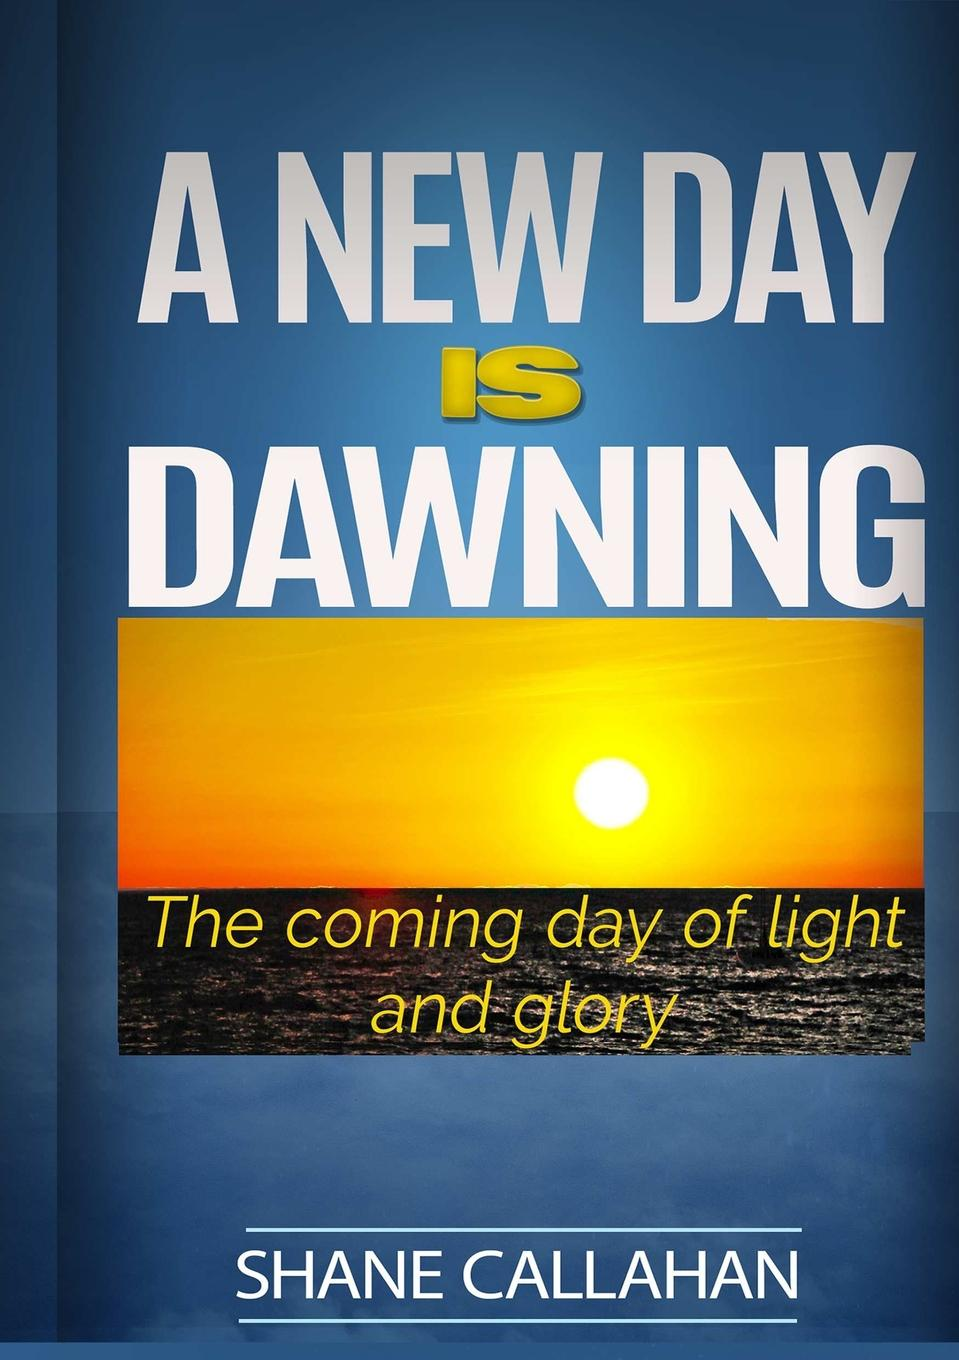 Shane Callahan A New Day Is Dawning. The Coming Day of Light and Glory